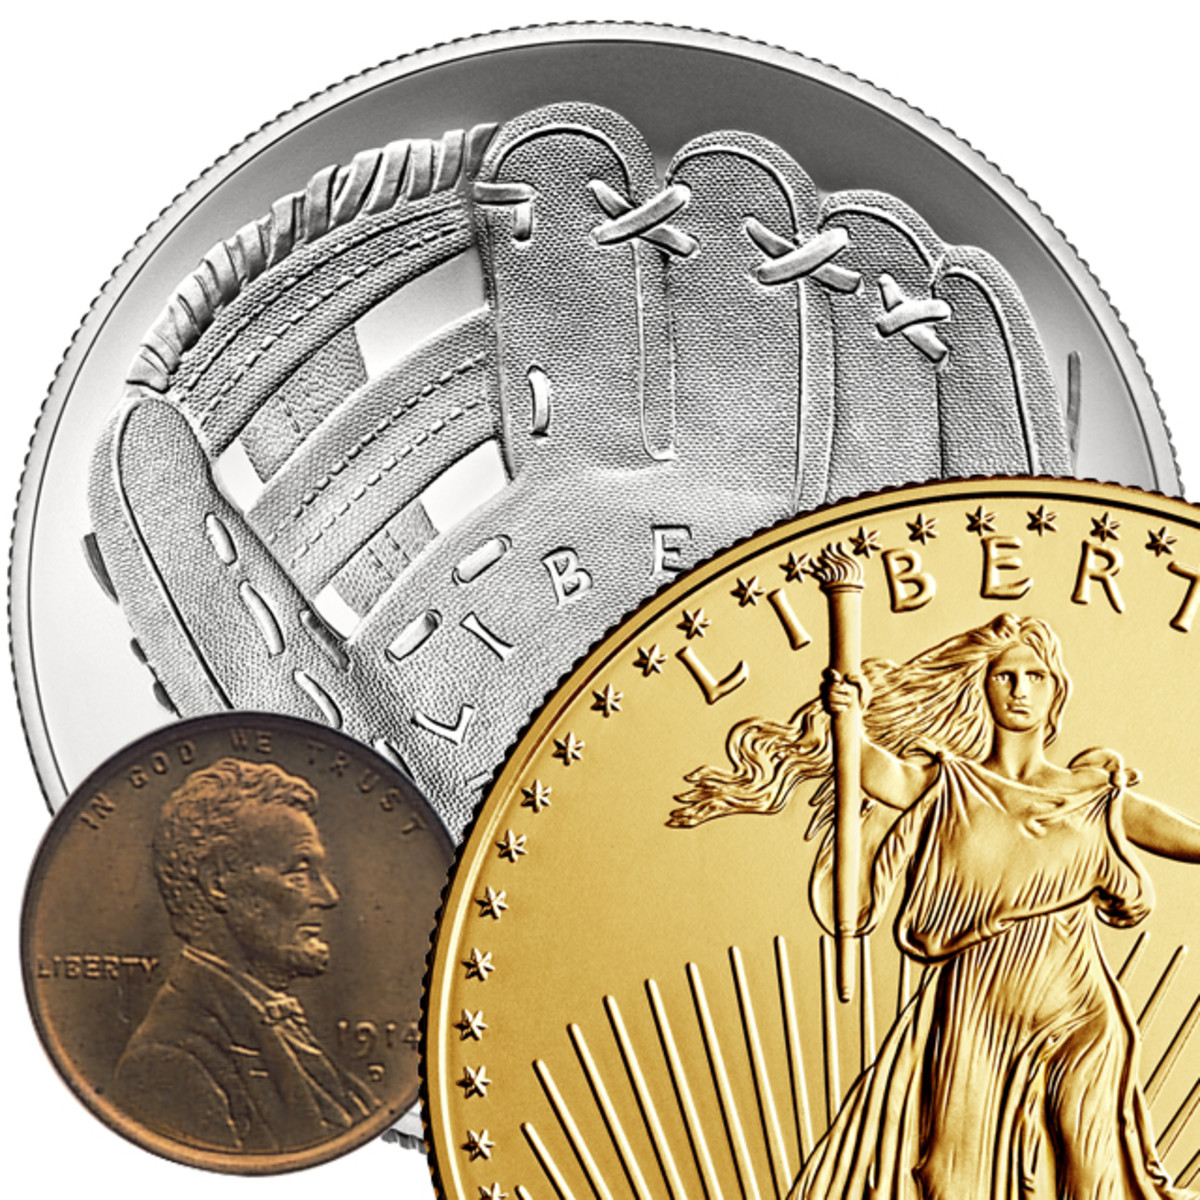 State sales tax exemptions for bullion and coins increase numismatic business.